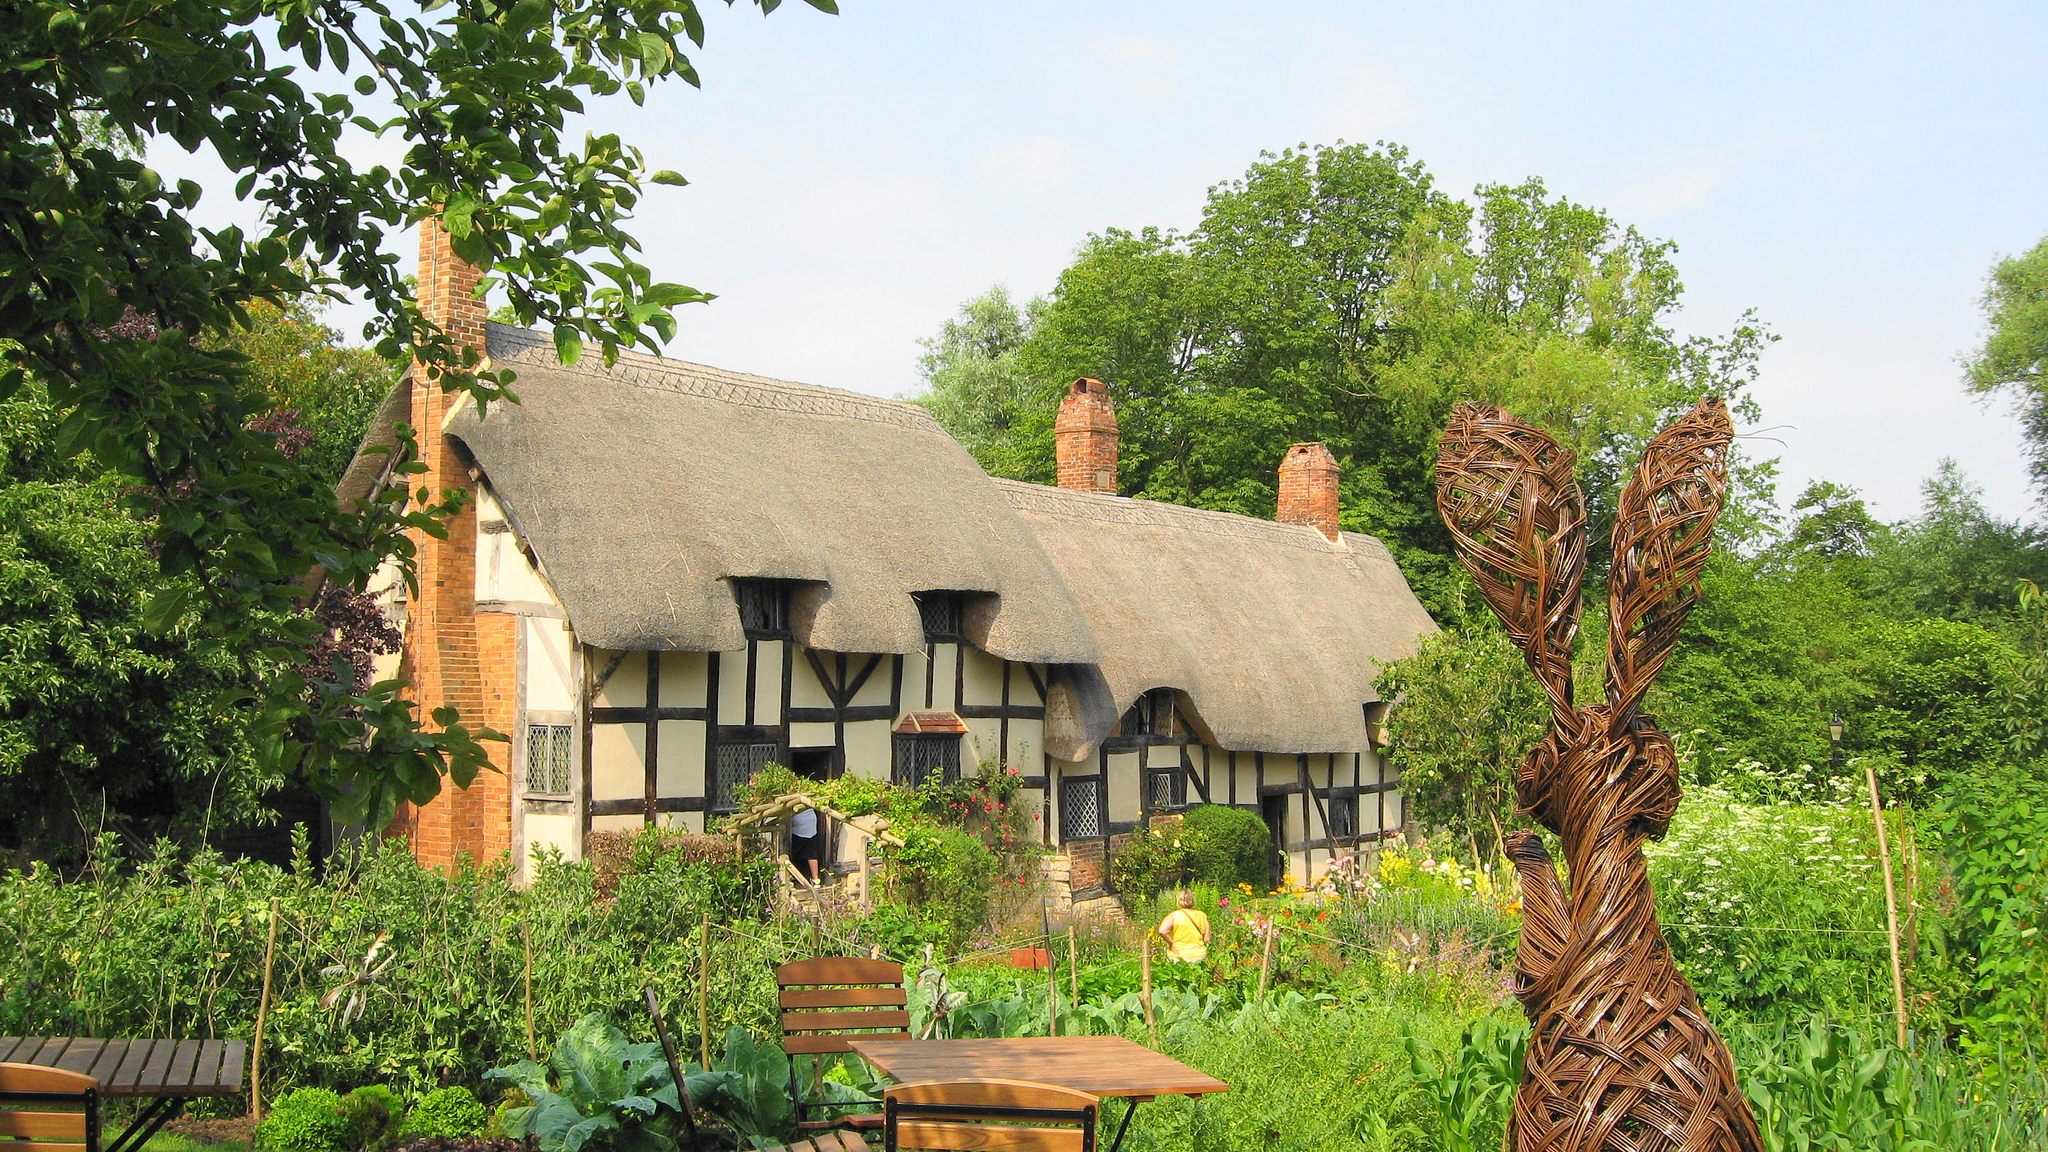 photograph fo exterior of large thatched cottage in cottage garden